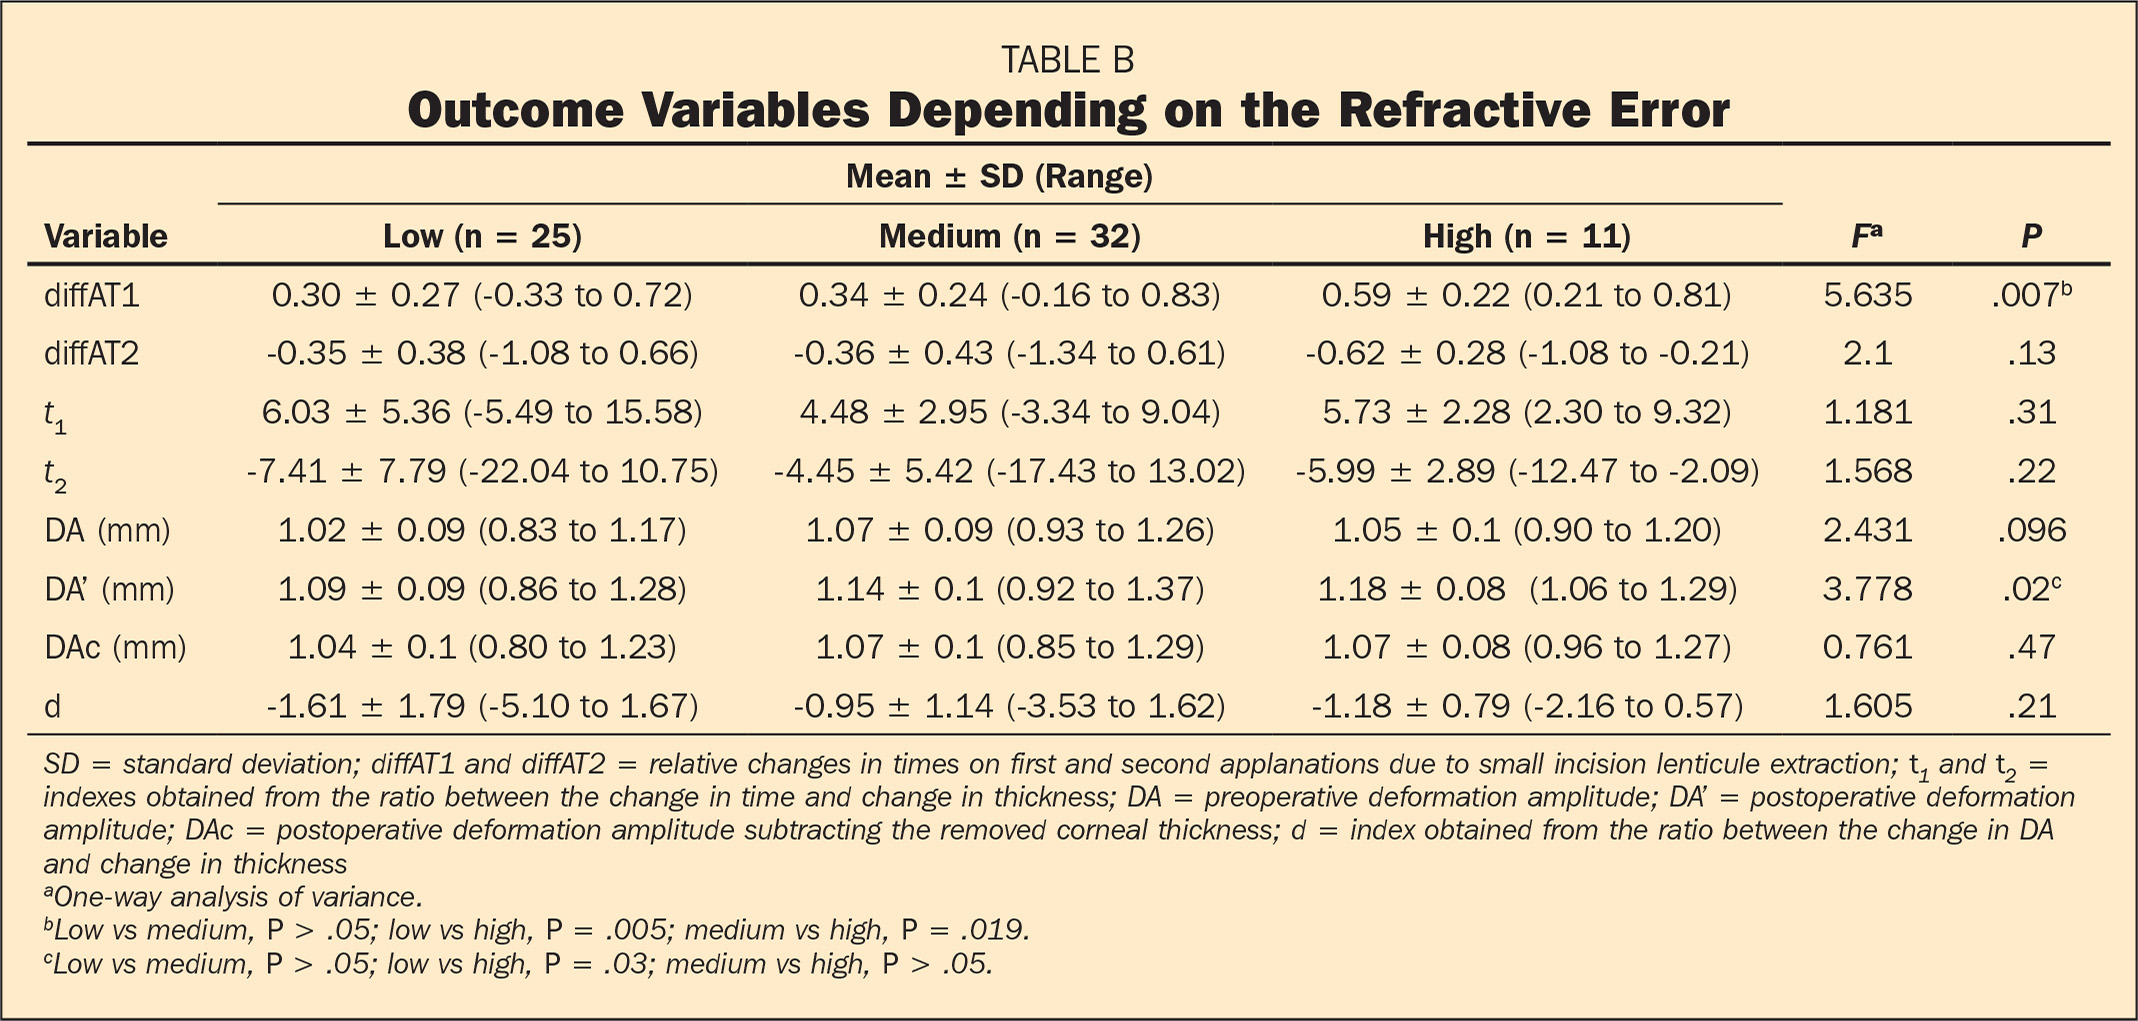 Outcome Variables Depending on the Refractive Error